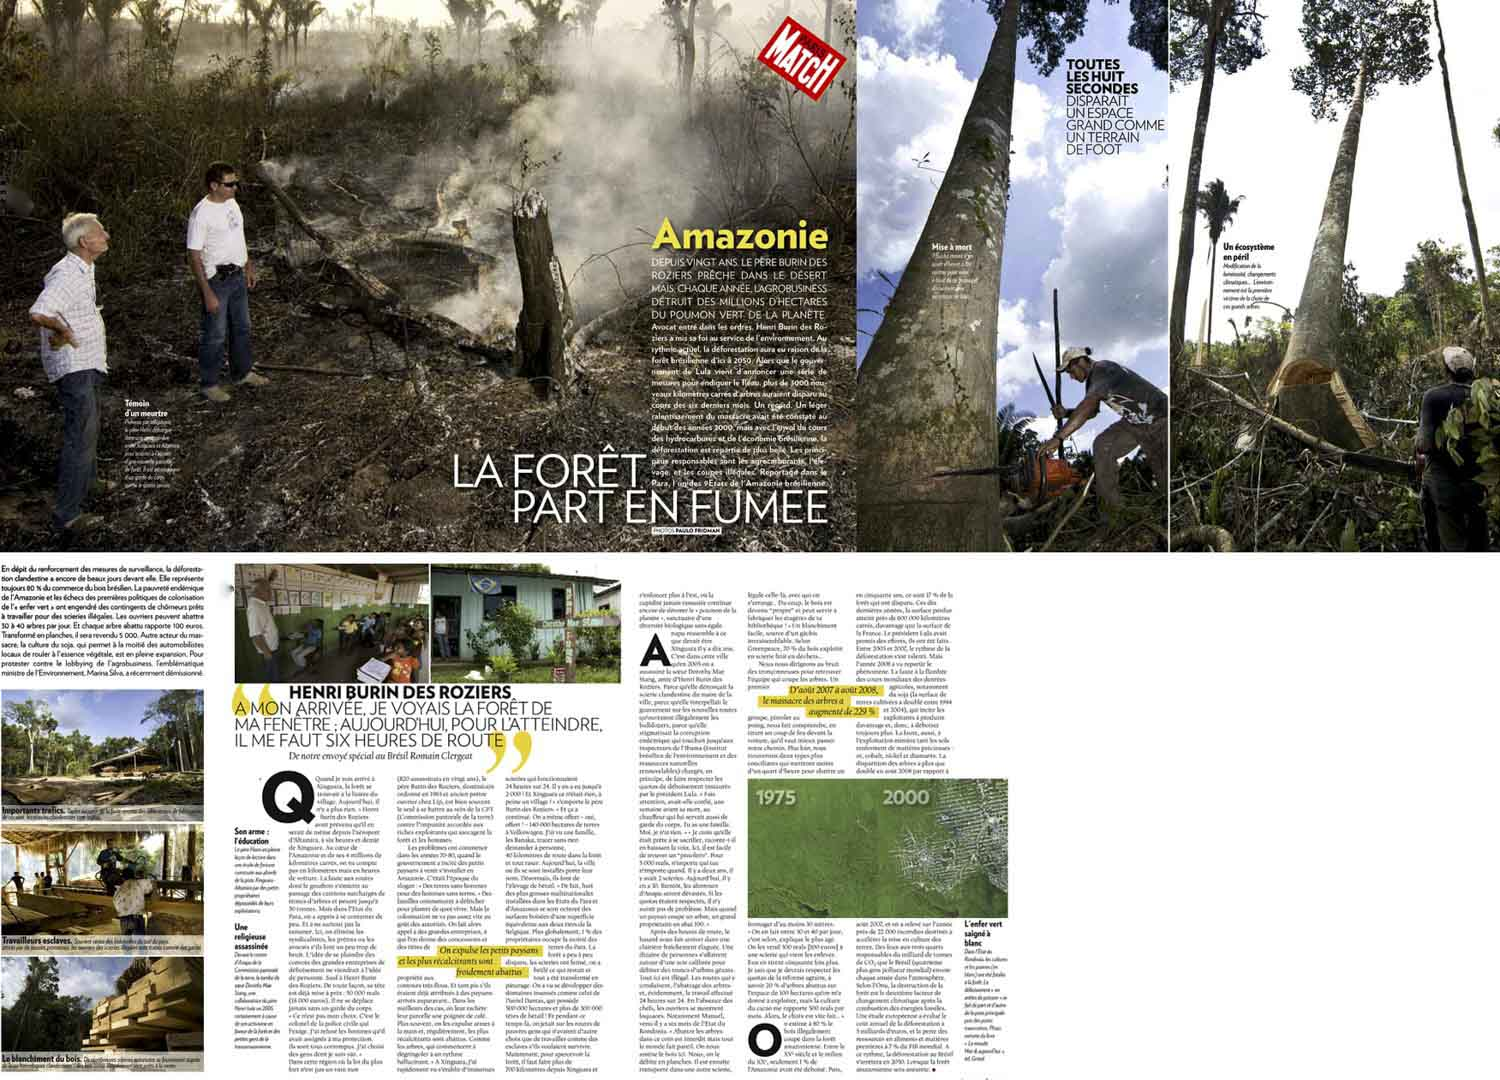 Paris Match, essay on the deforestation and the priest Henri Burin des Roziers.